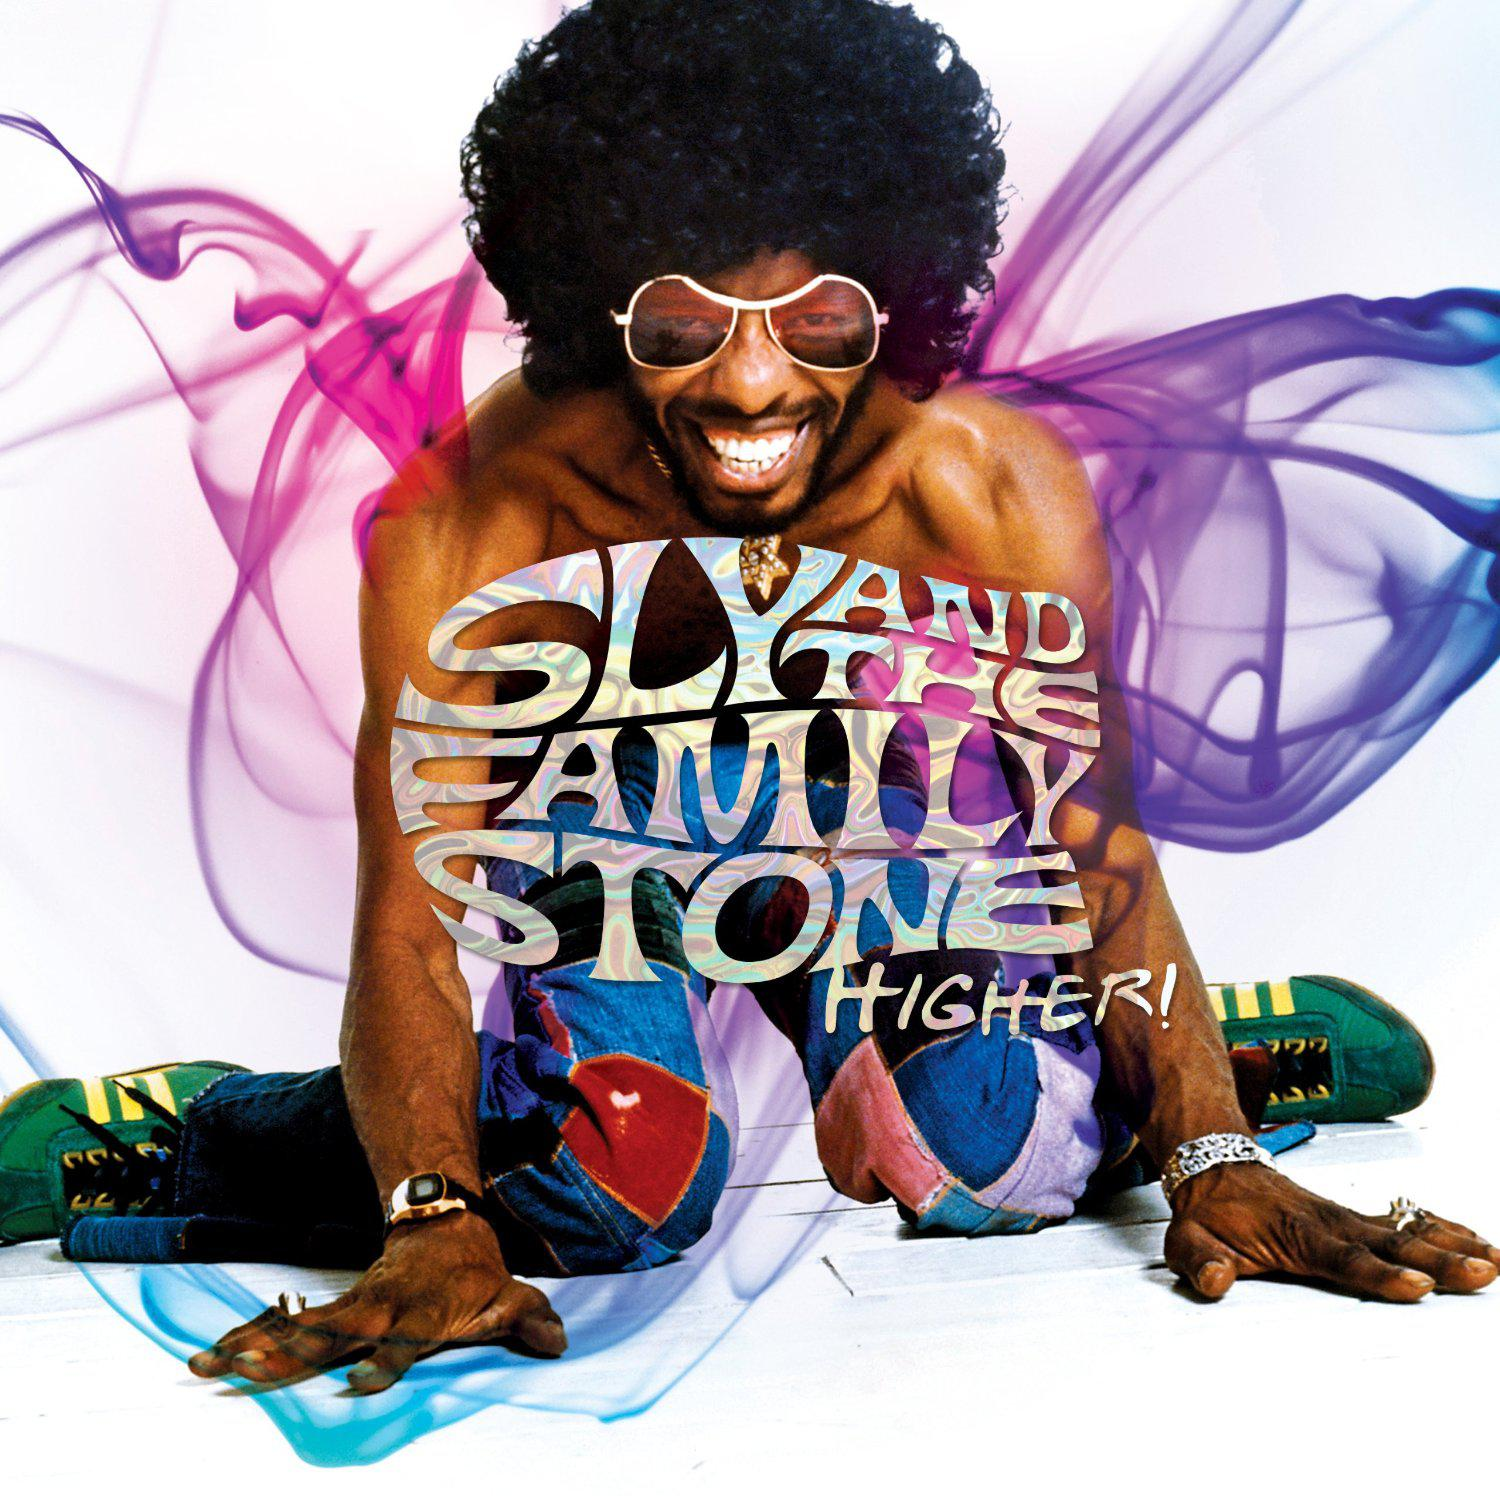 Sly and The Family Stone - Higher (2013) [MULTI]